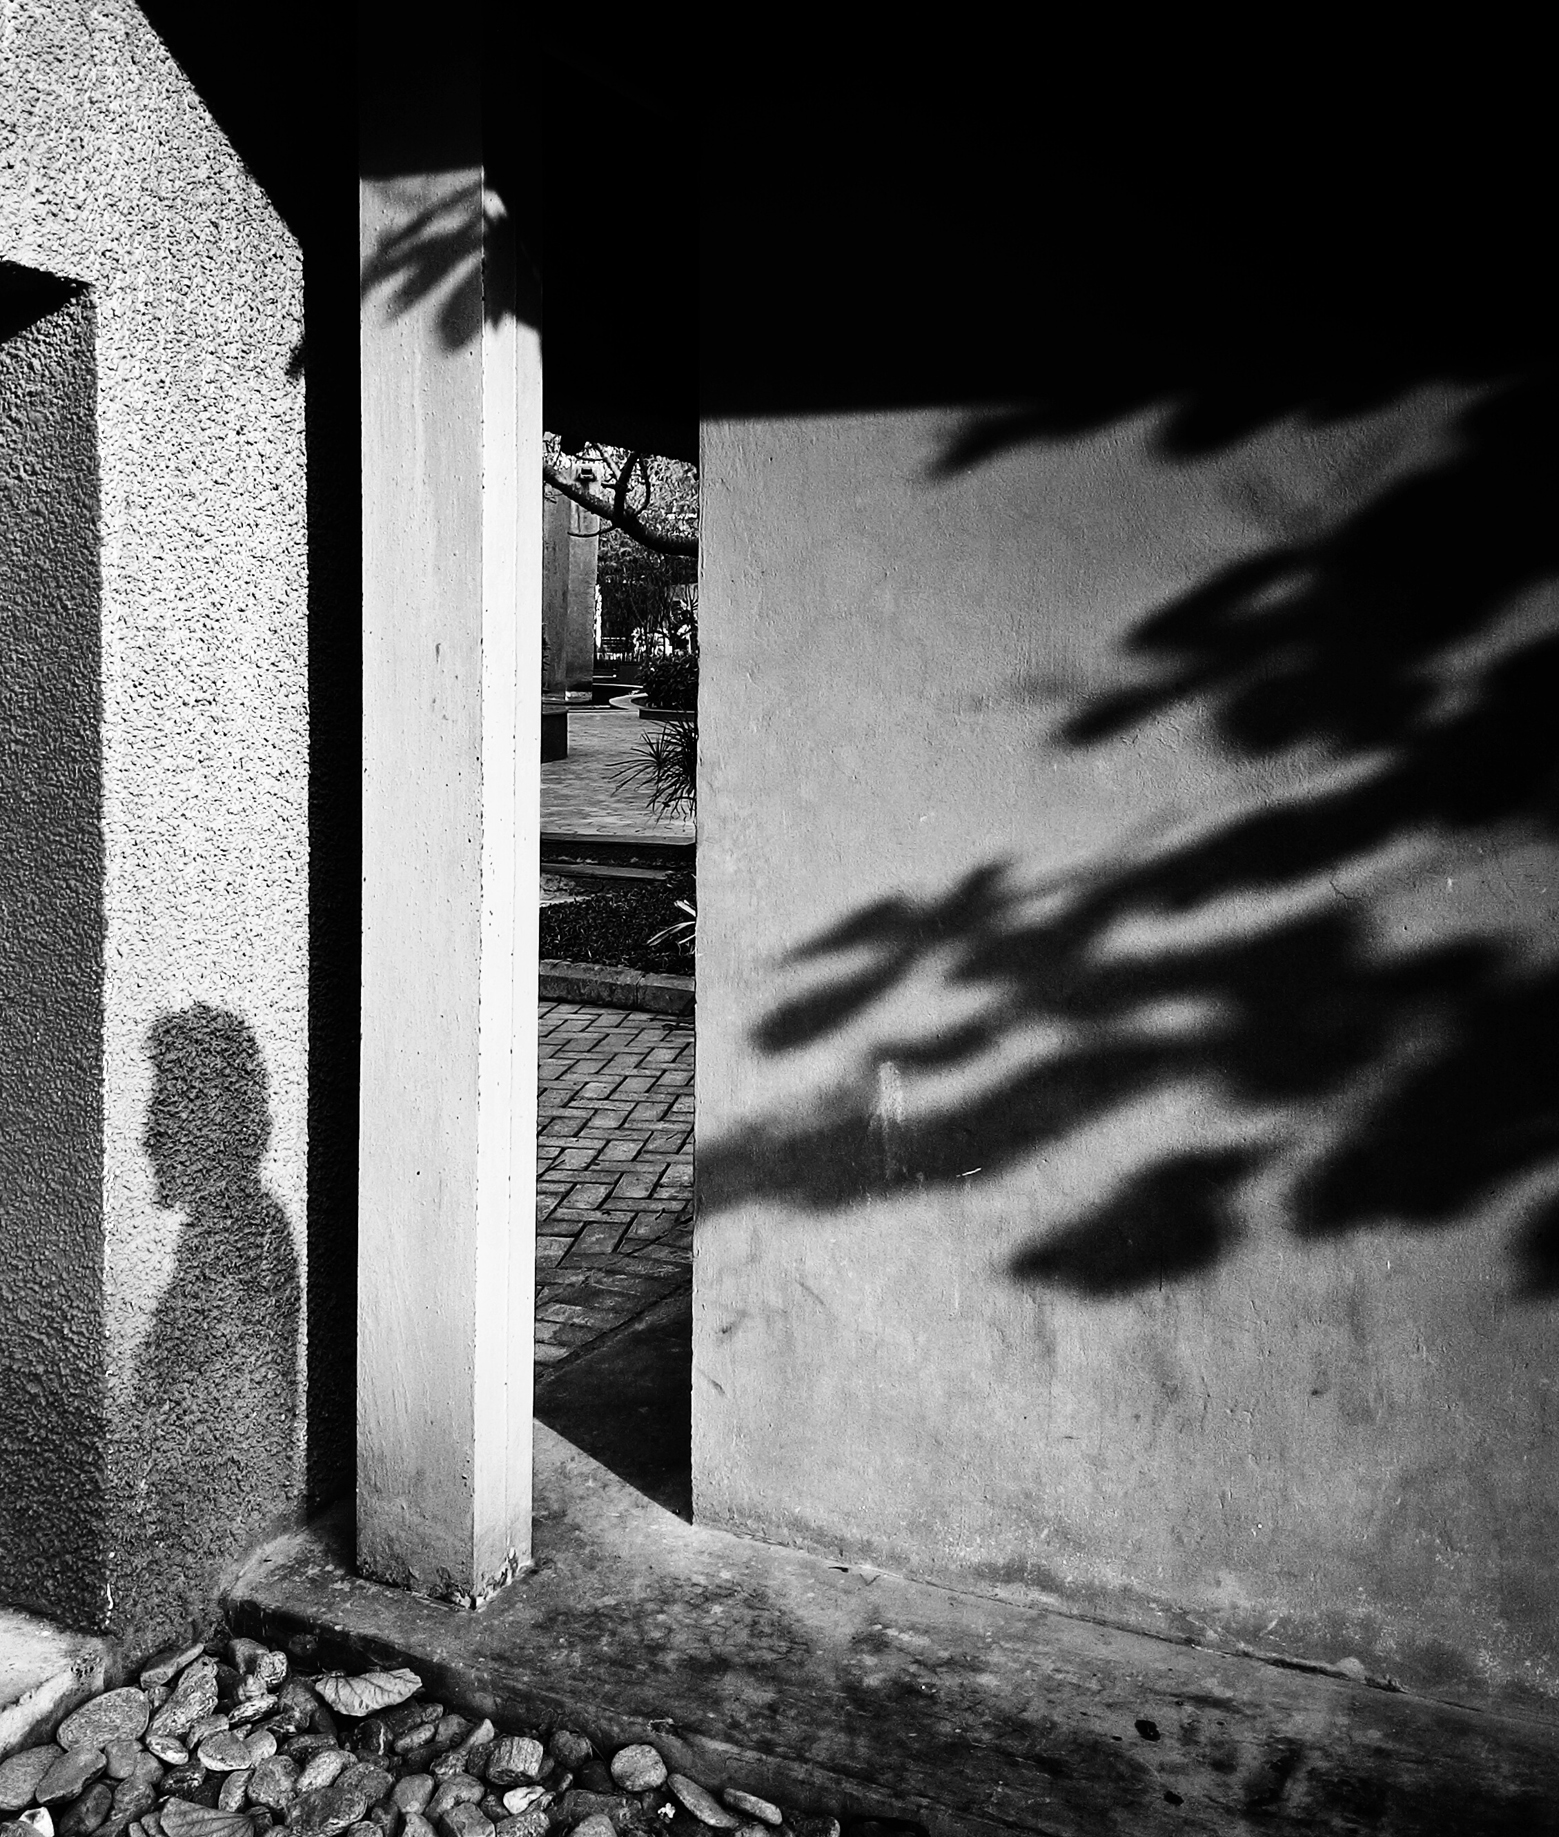 Its only tree and the shadows it gives that provides my dark passenger the solace it needs.